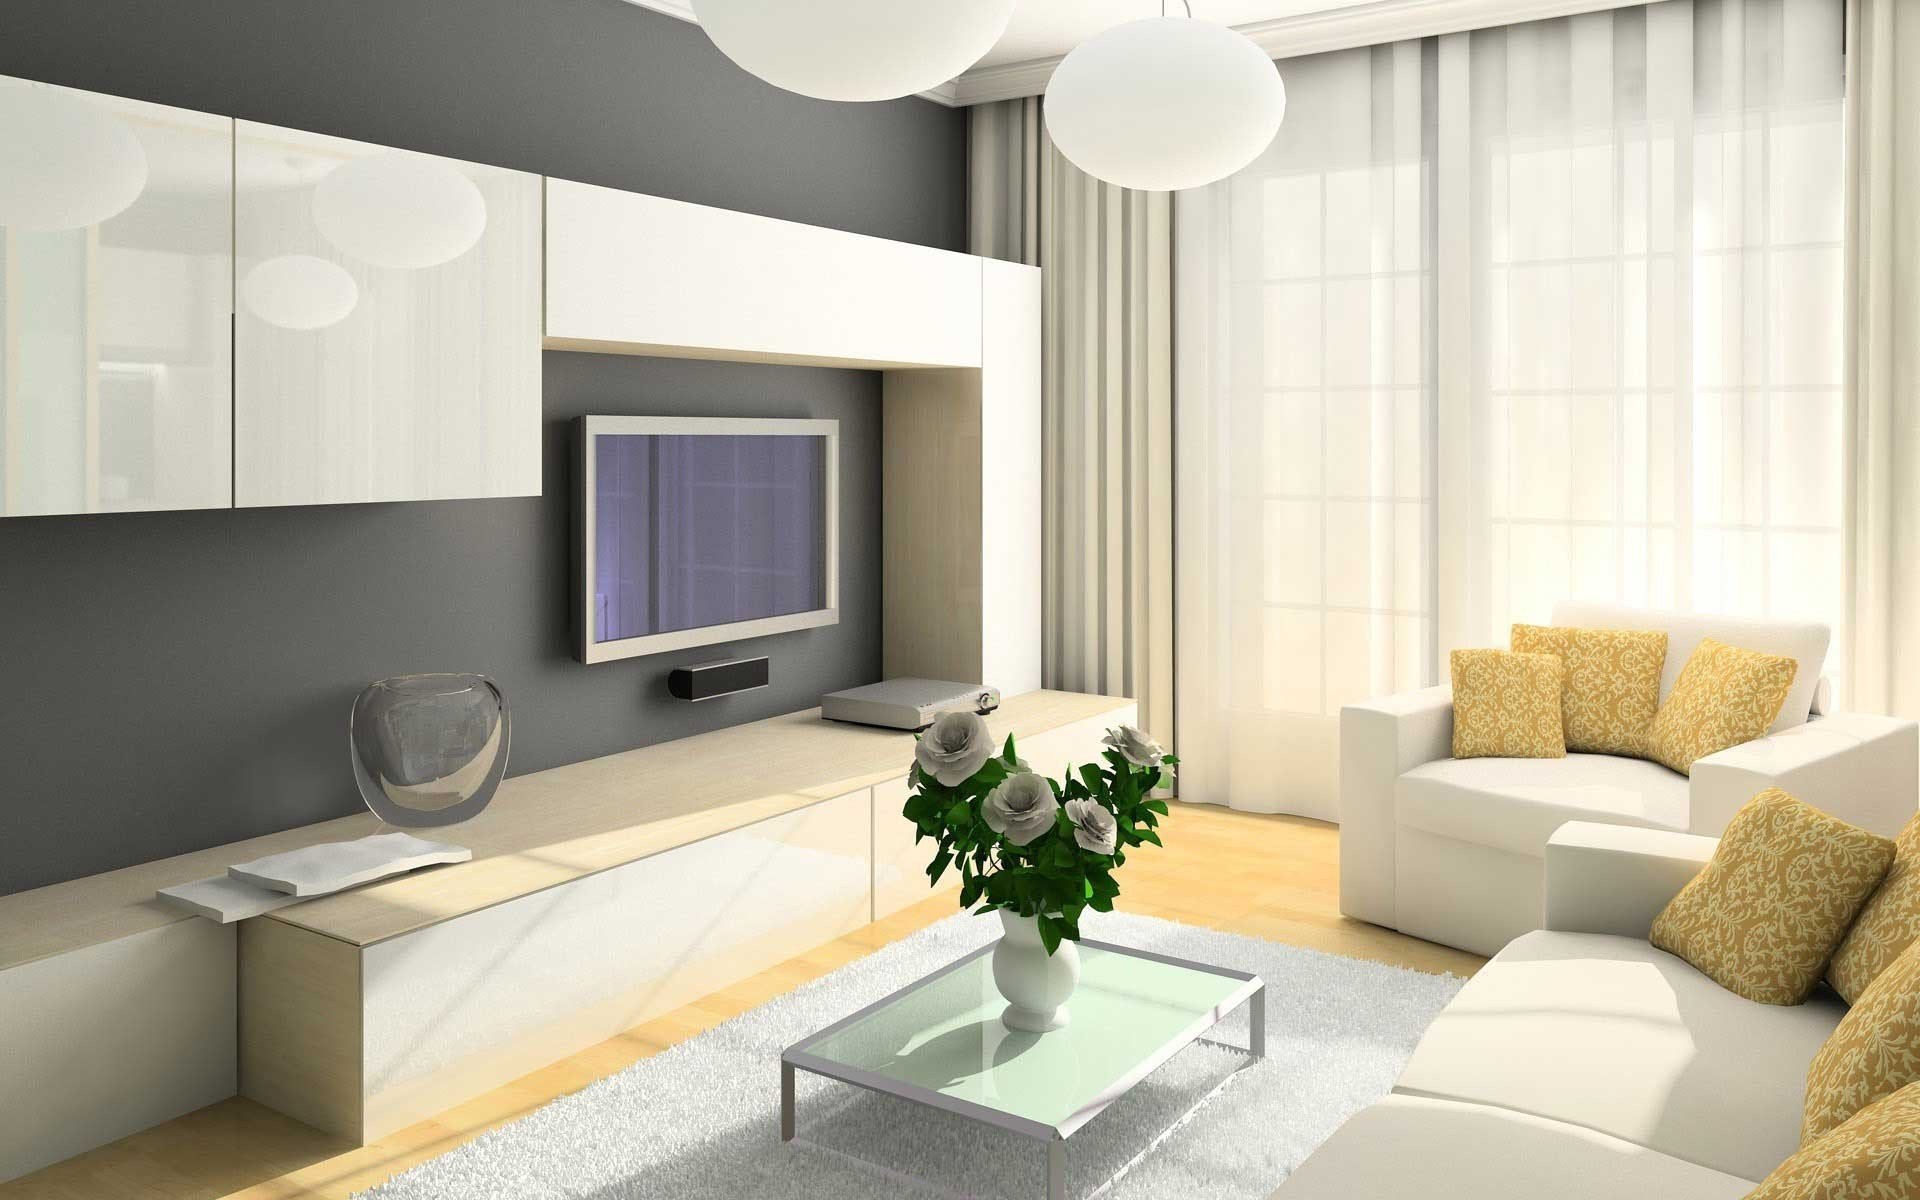 Living Room Ideas Contemporary Best Of 35 Modern Living Room Designs for 2017 2018